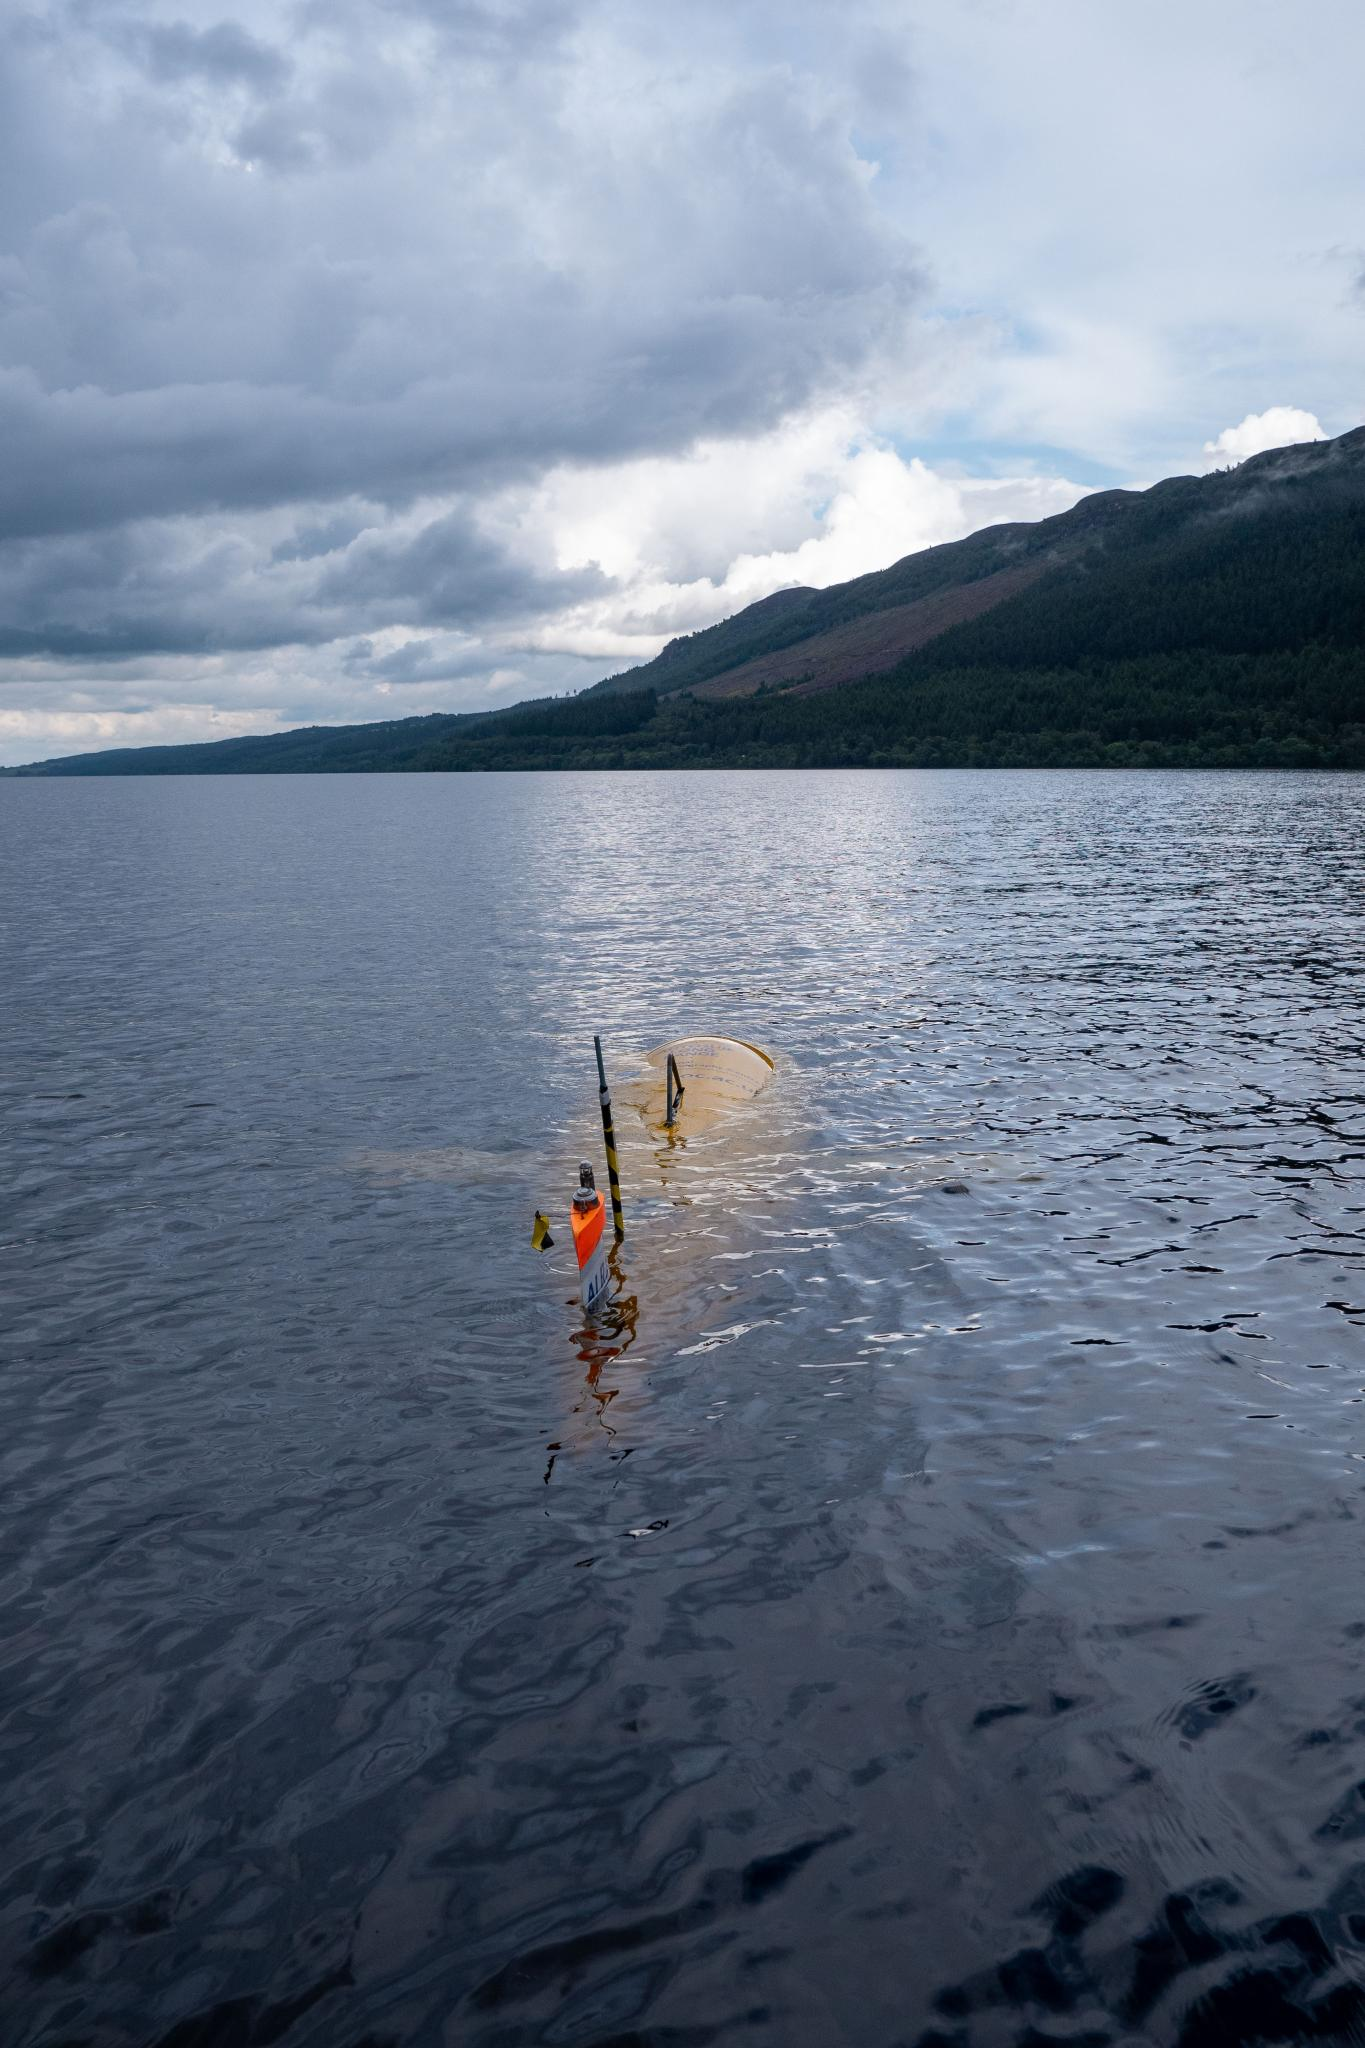 ALR6 undergoes commissioning trials at Loch Ness